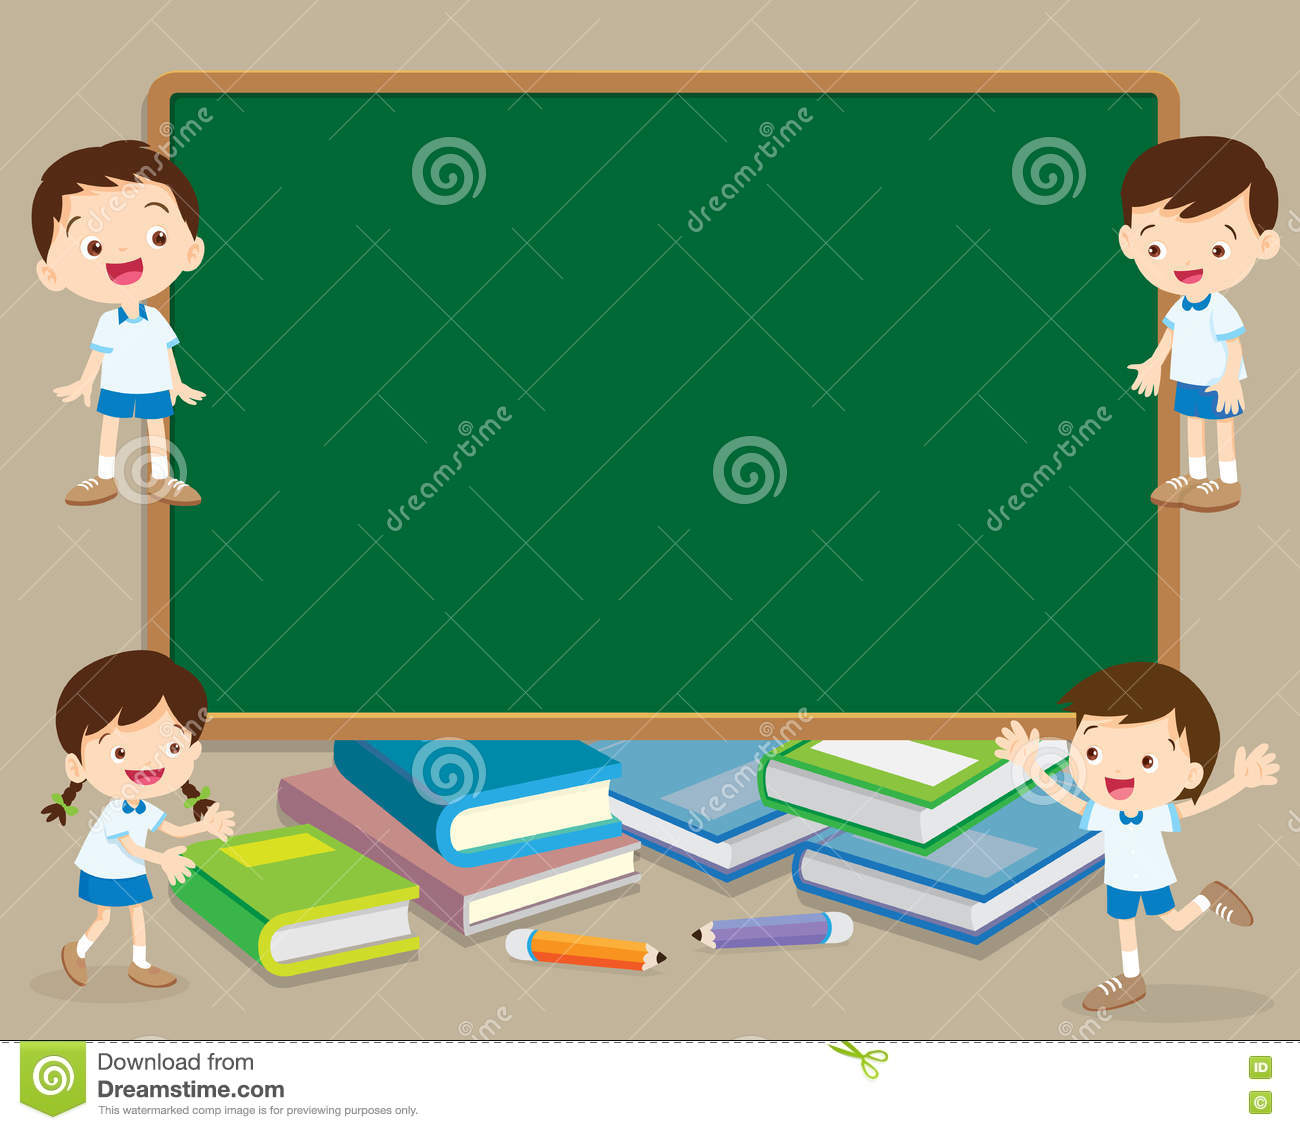 Children and chalkboard stock vector  Illustration of desk - 81451567